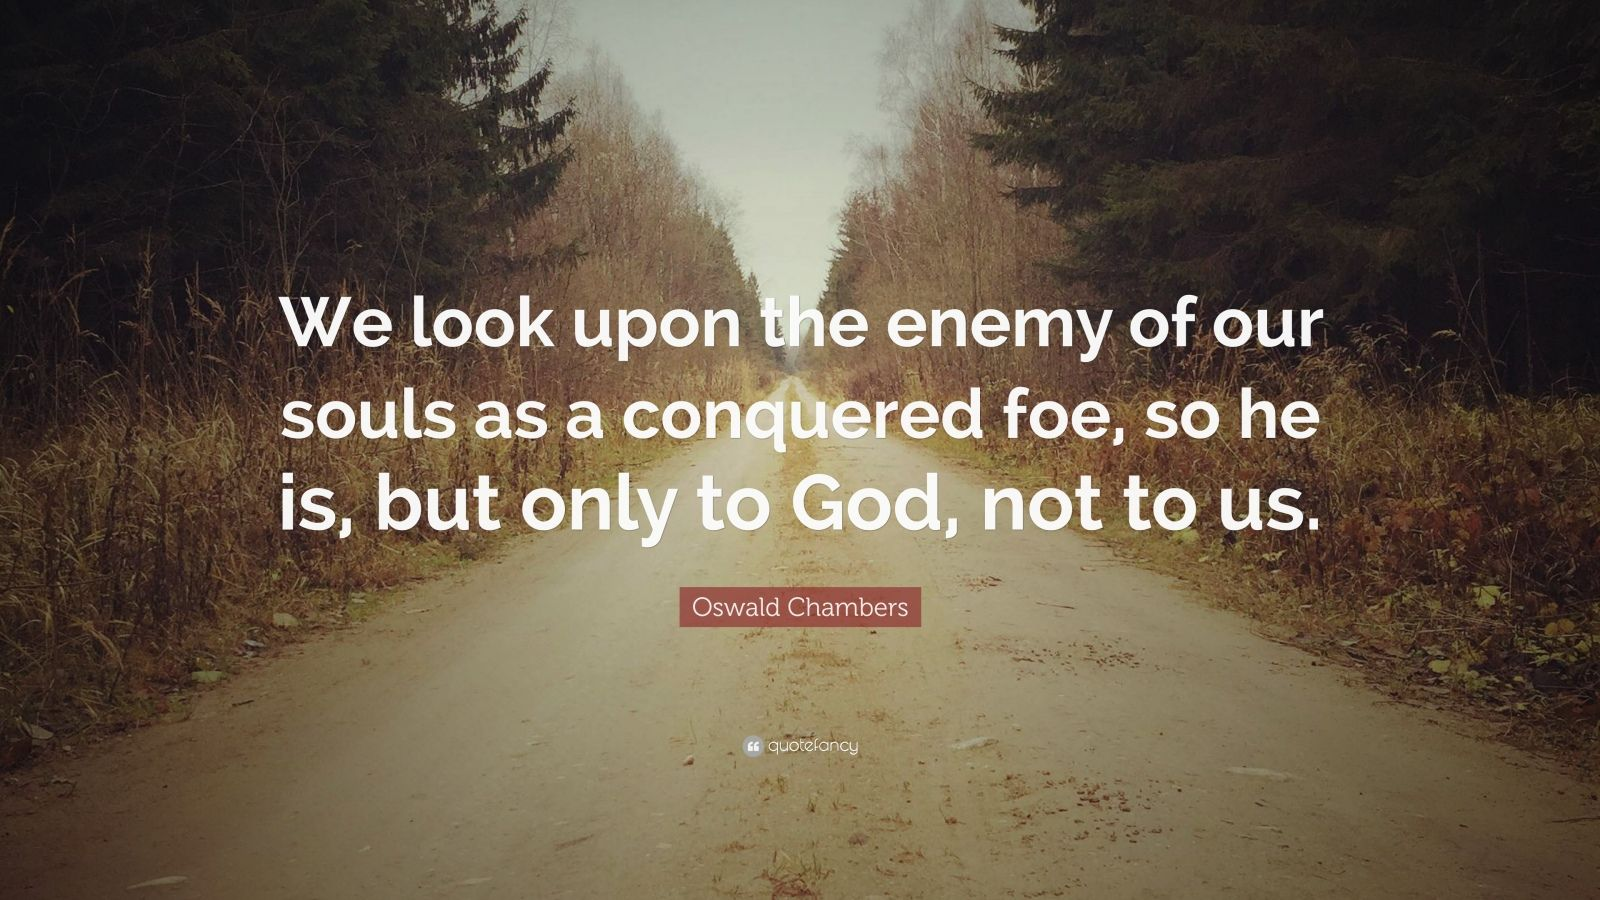 """Oswald Chambers Quote: """"We look upon the enemy of our souls as a conquered foe, so he is, but only to God, not to us."""""""